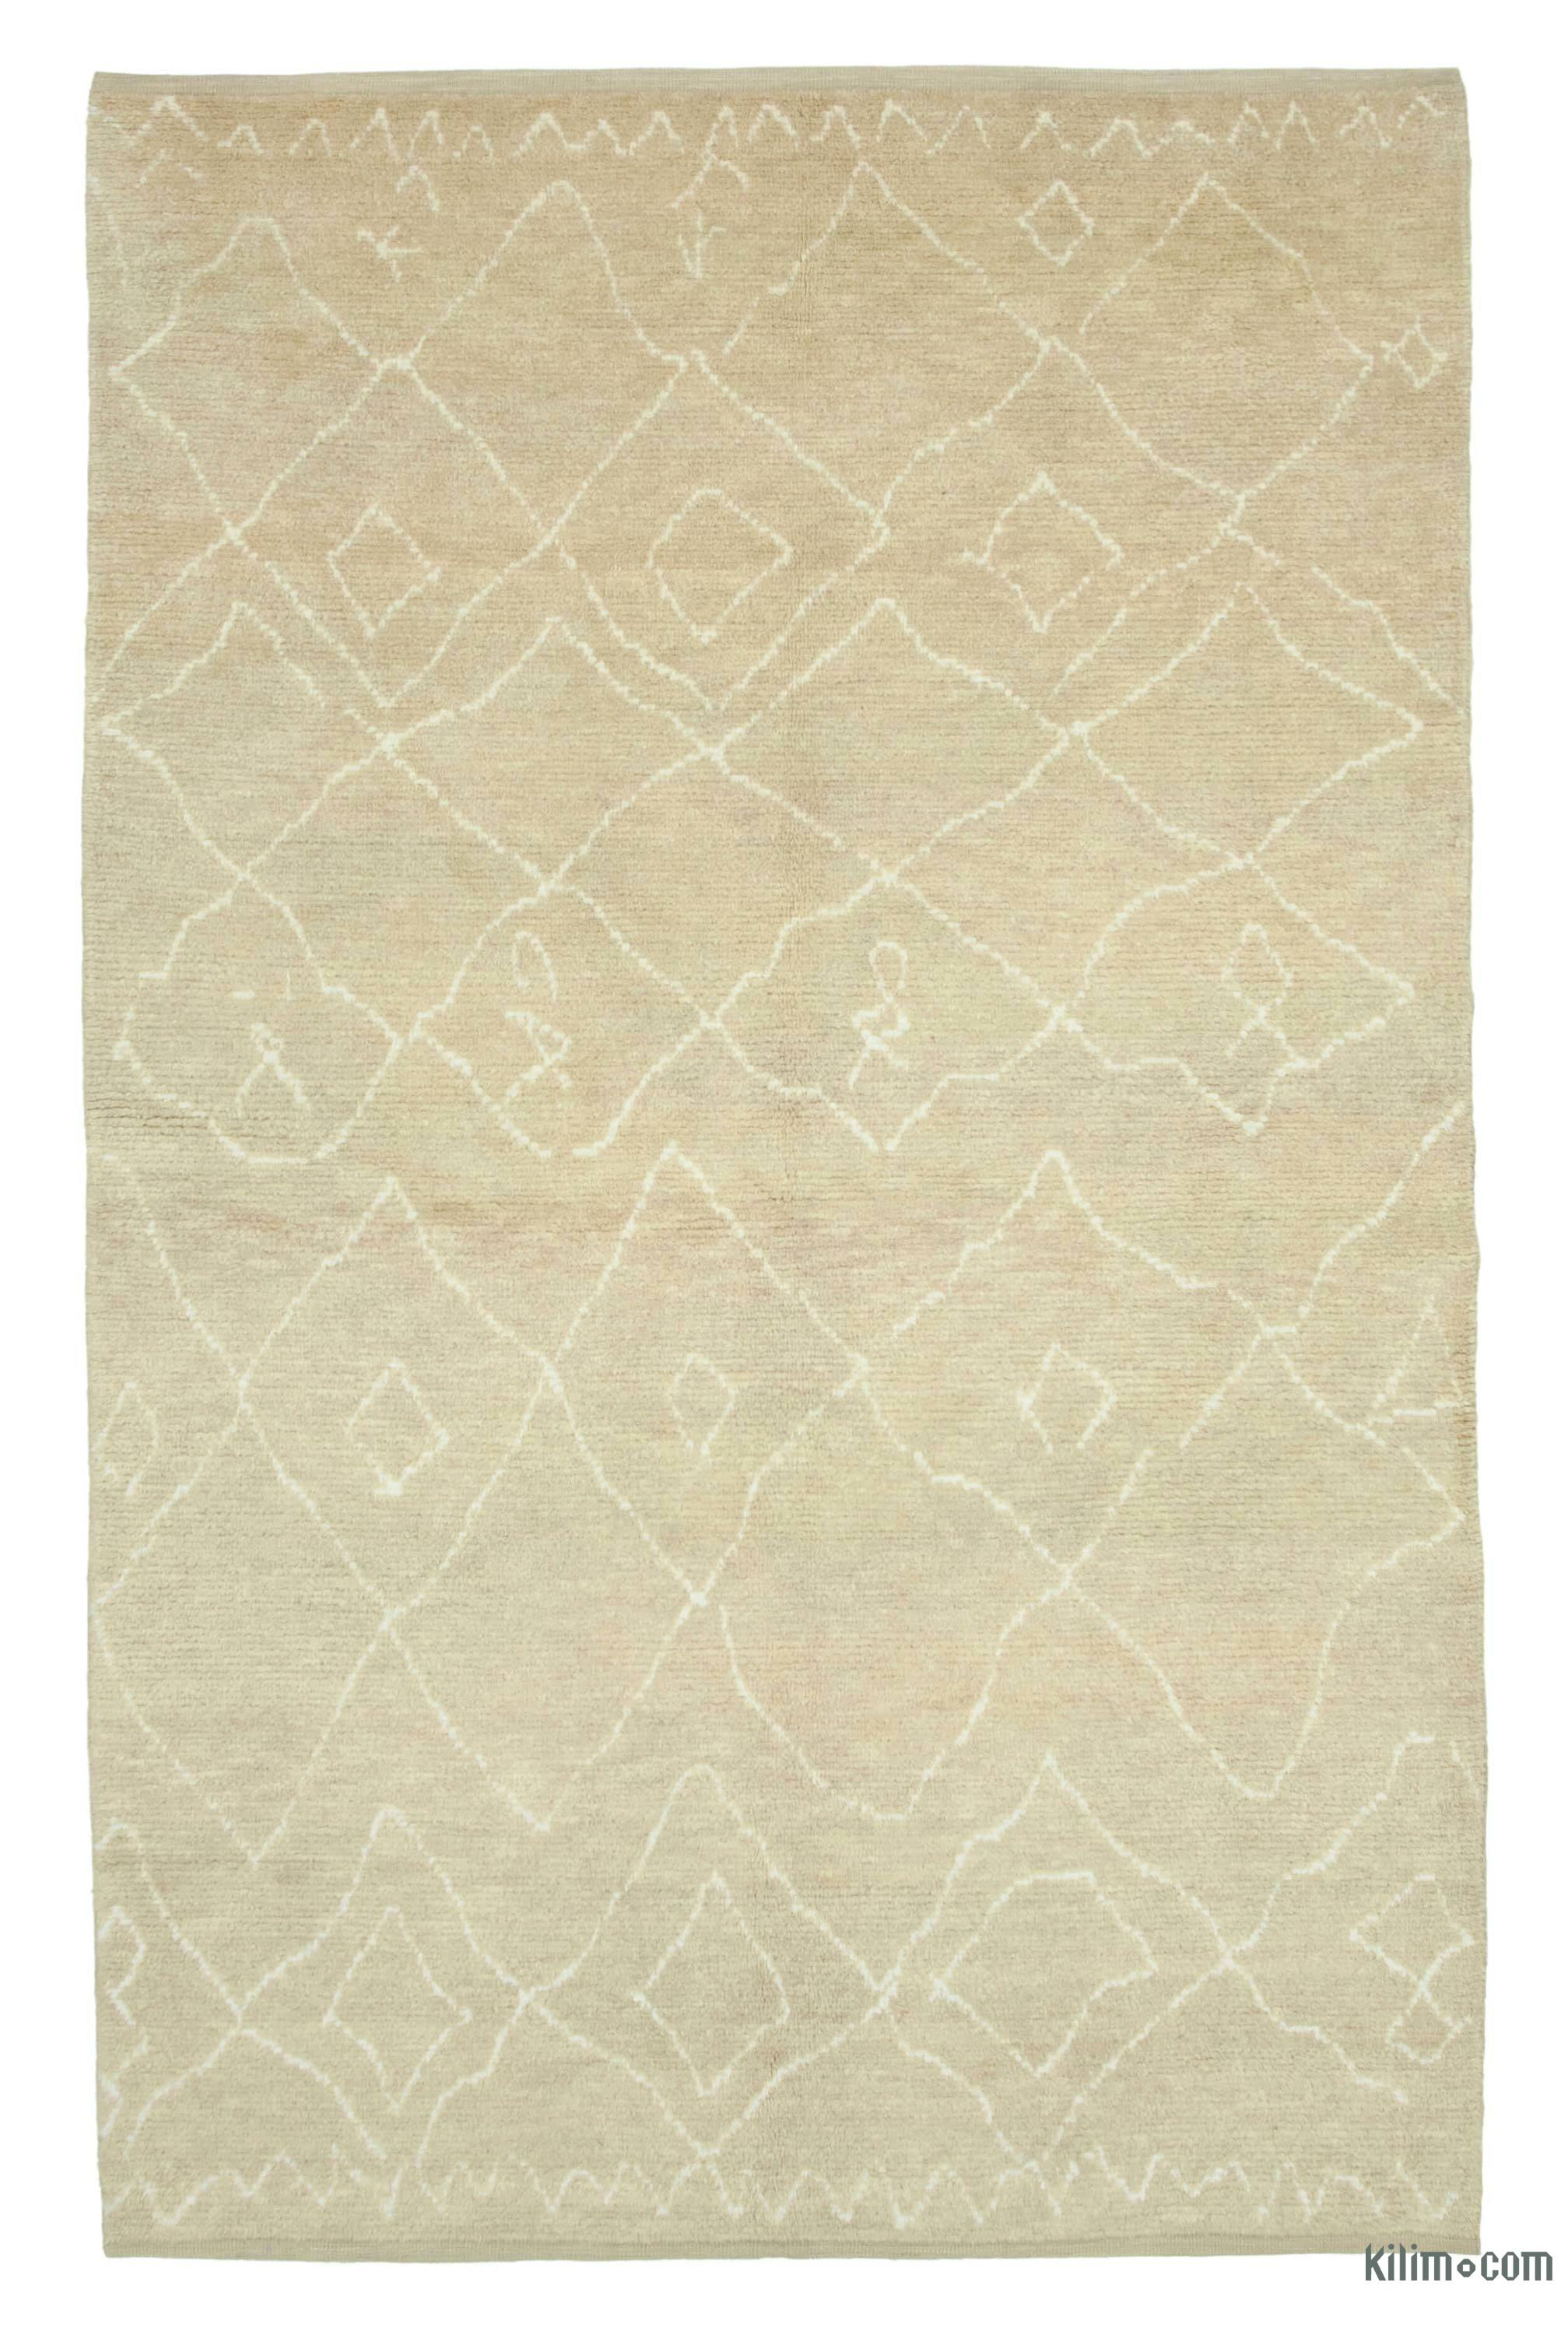 Beige New Contemporary Hand Knotted Wool Area Rug 6